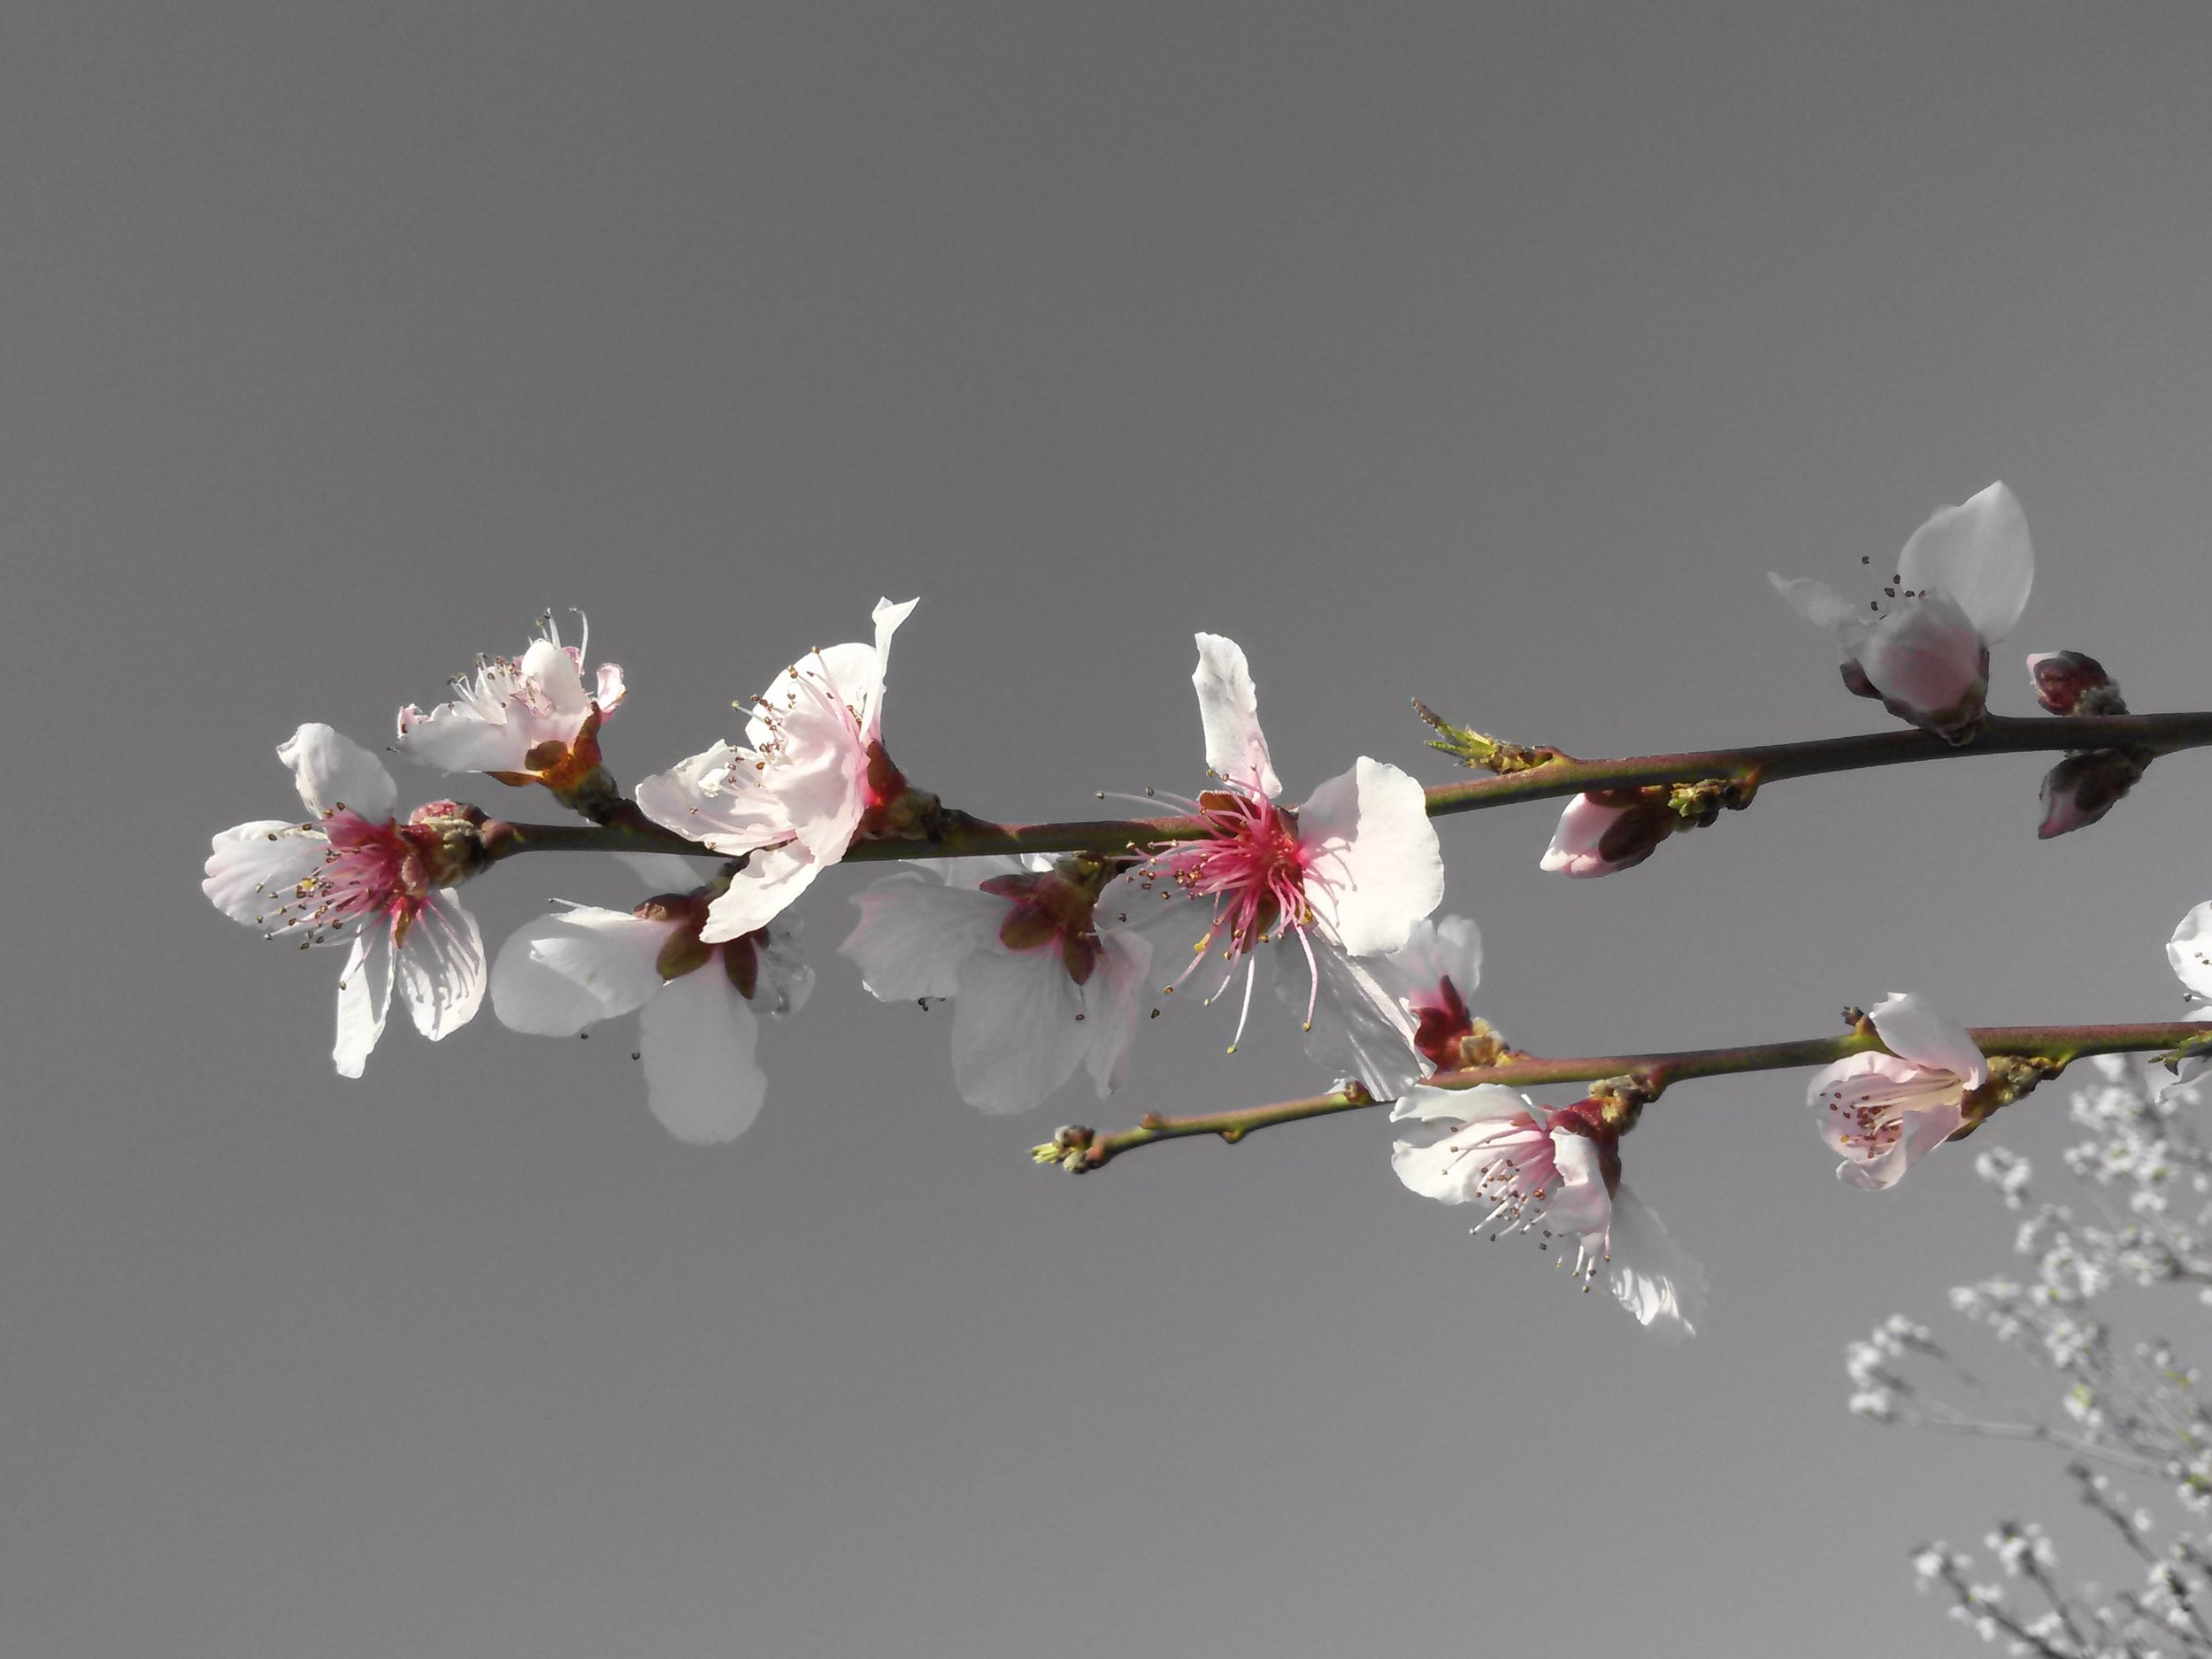 apricot-april-blooming-59318.jpg